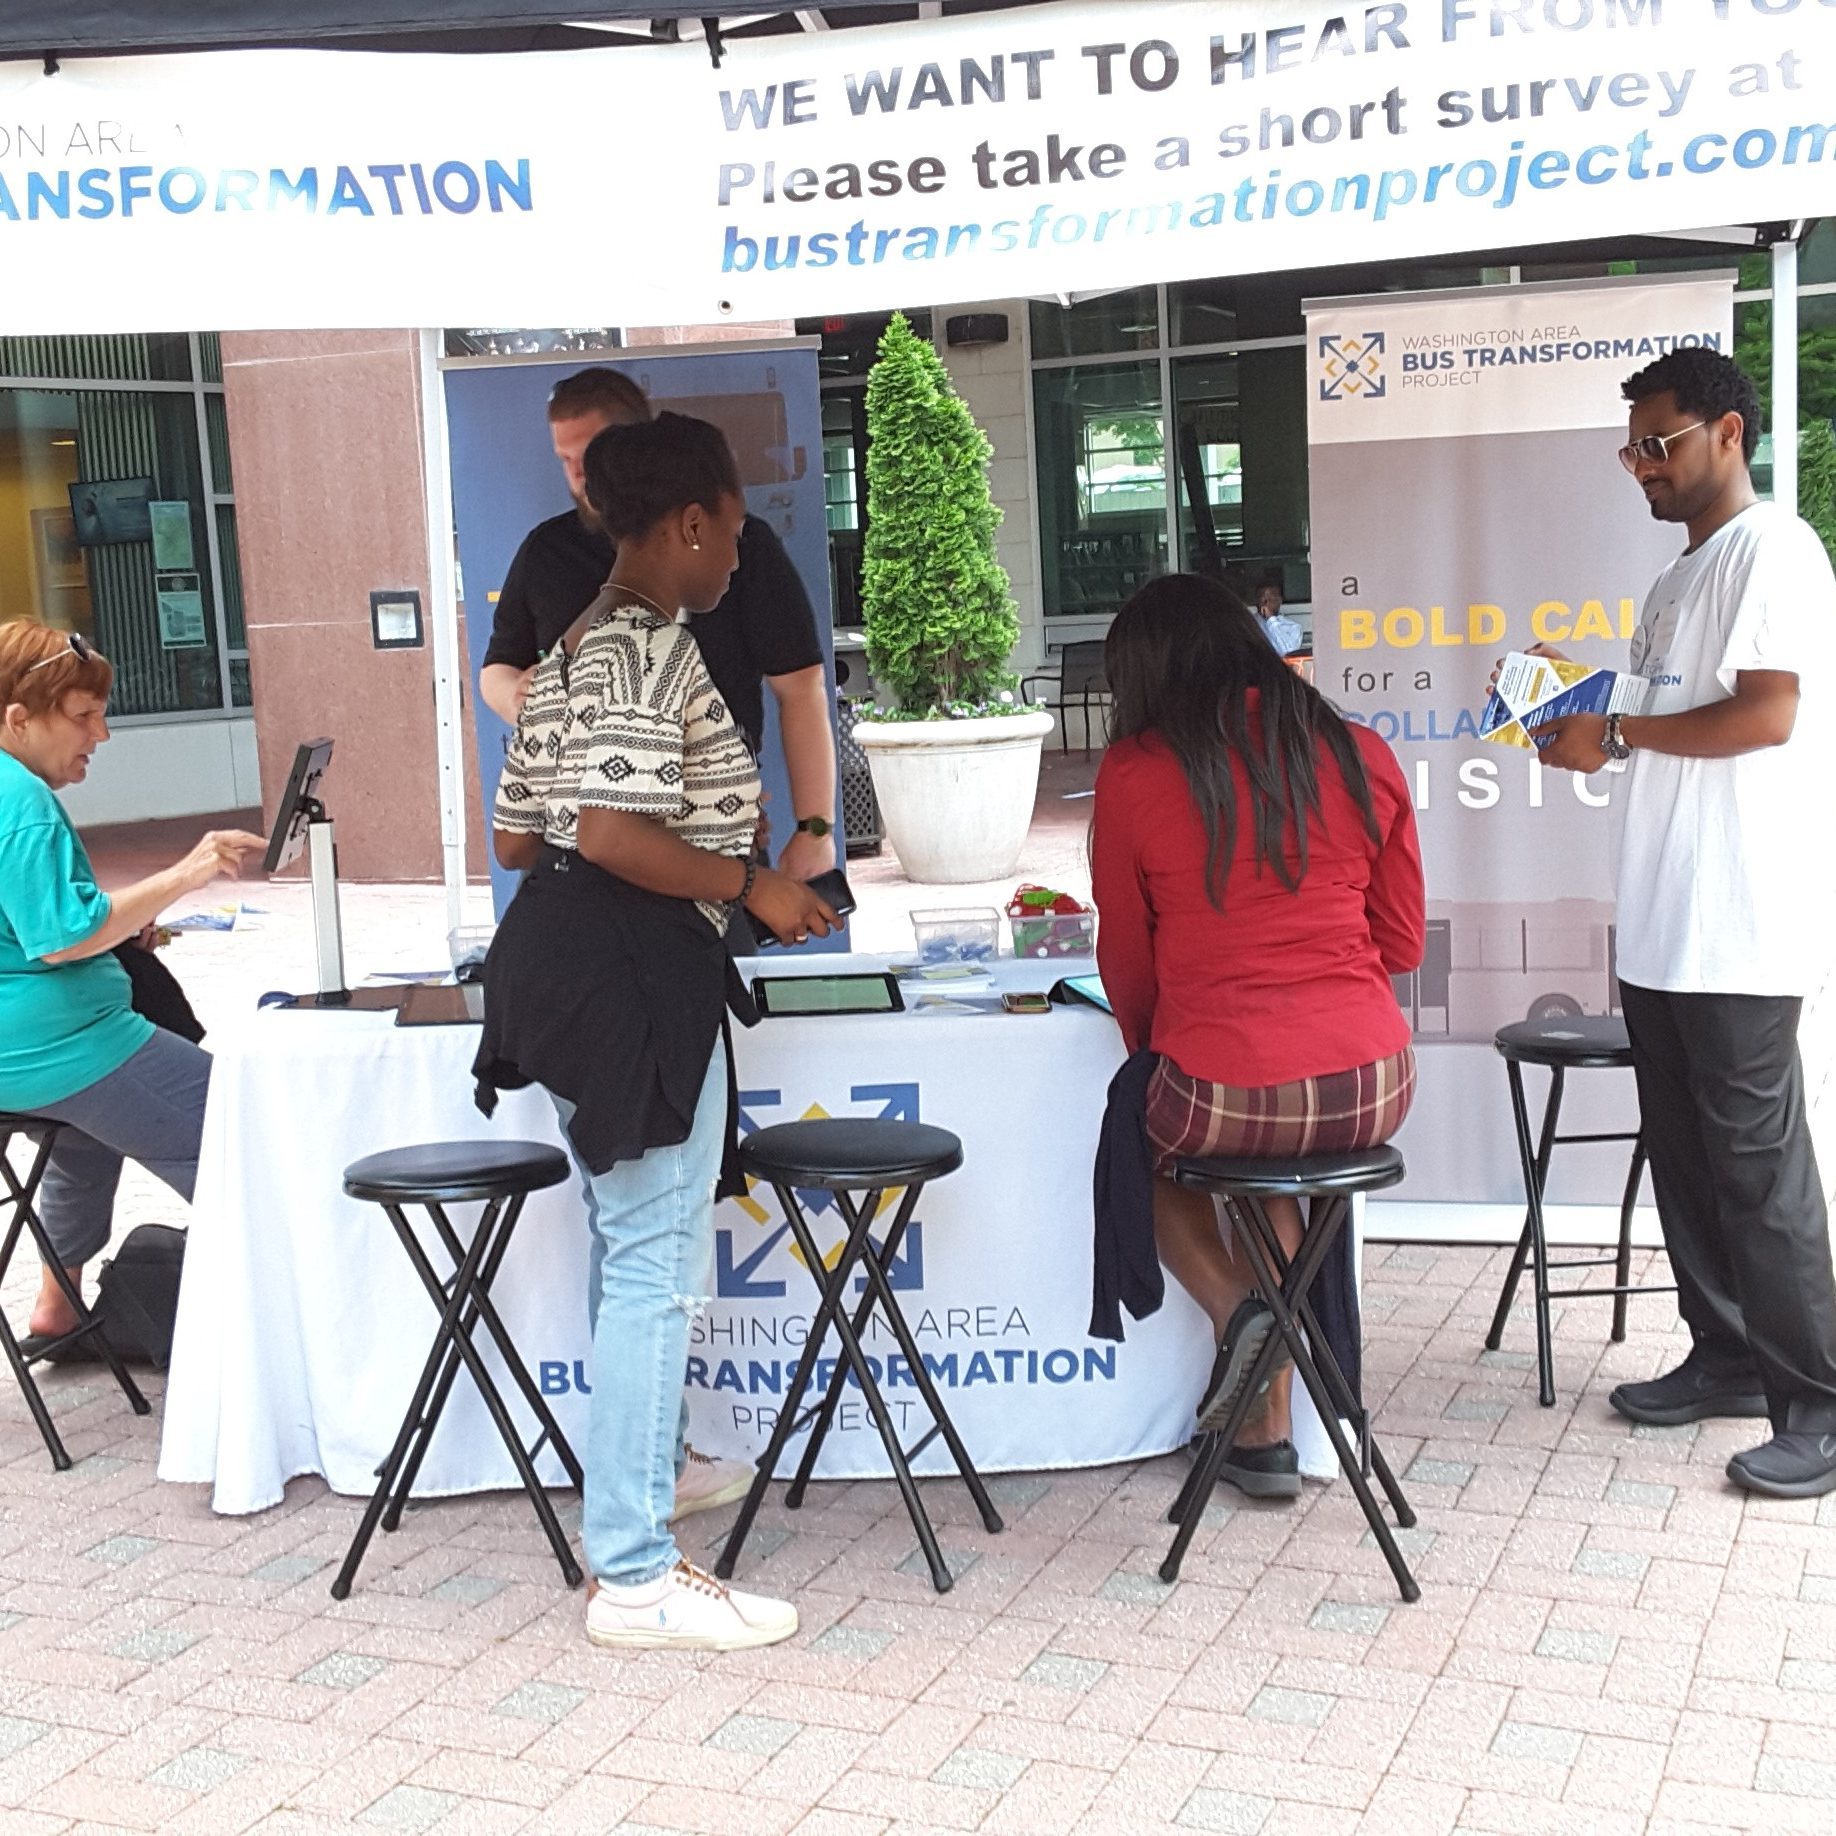 Event booth with people at the Village at Shirlington